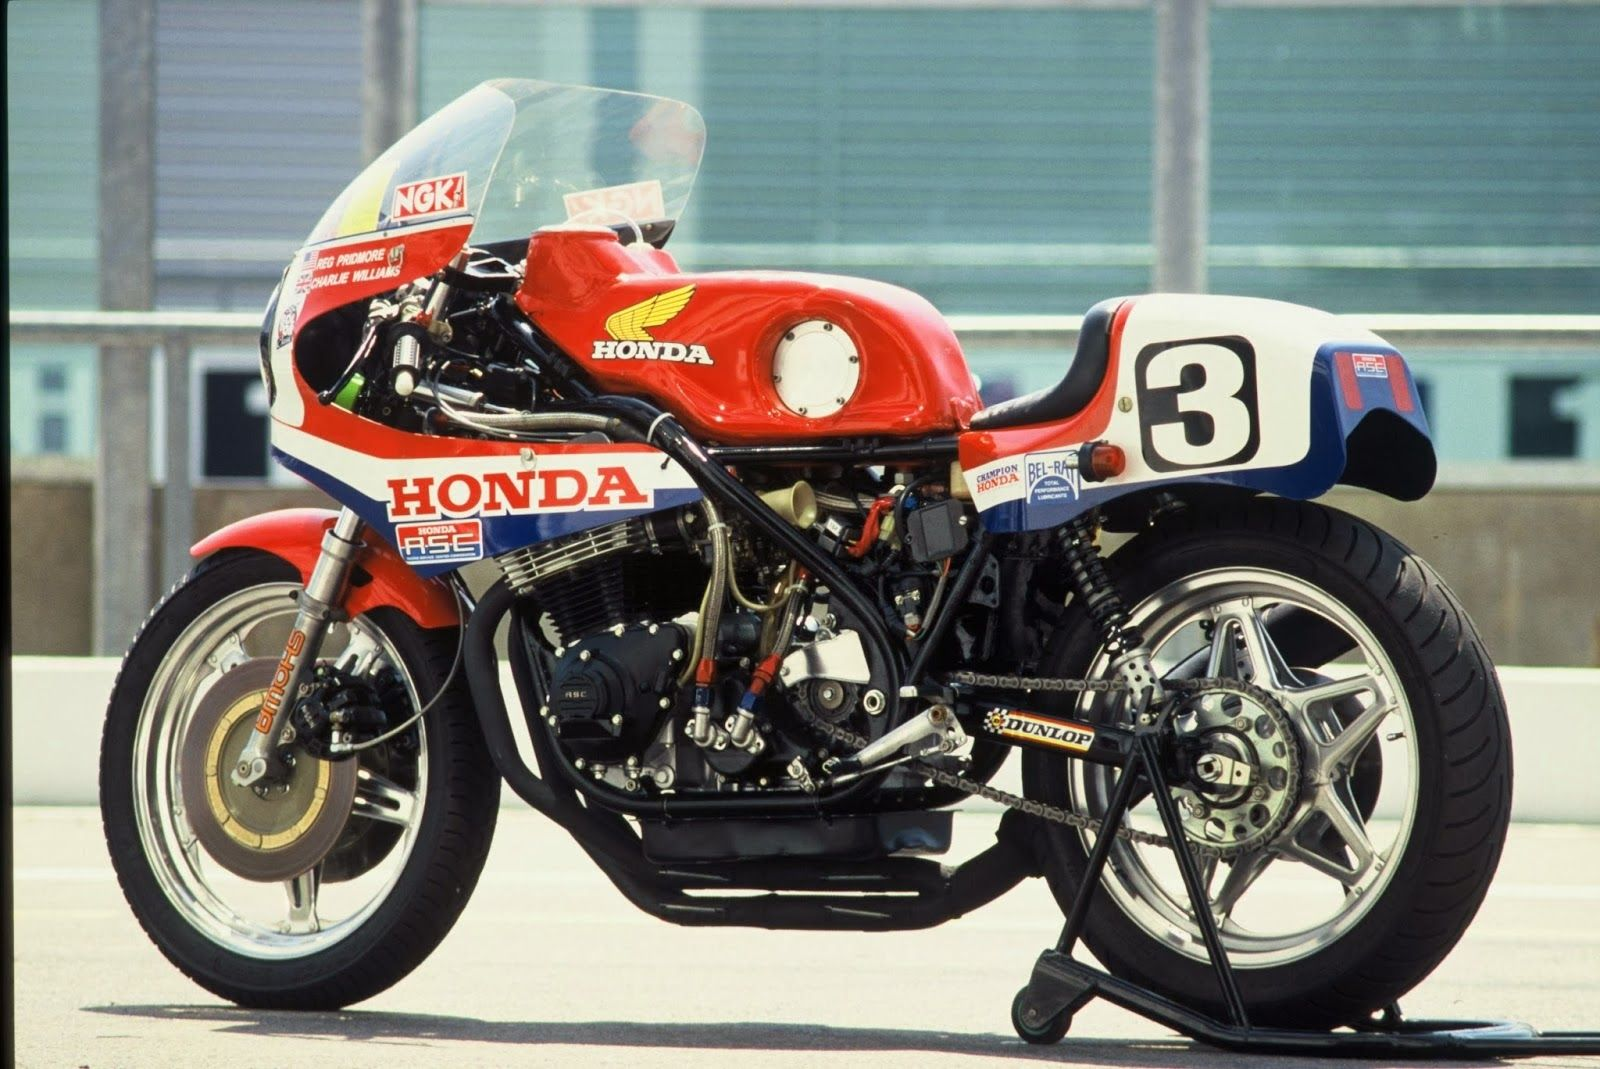 Motor-Forum.nl - Youngtimer / Classic Superbike topic